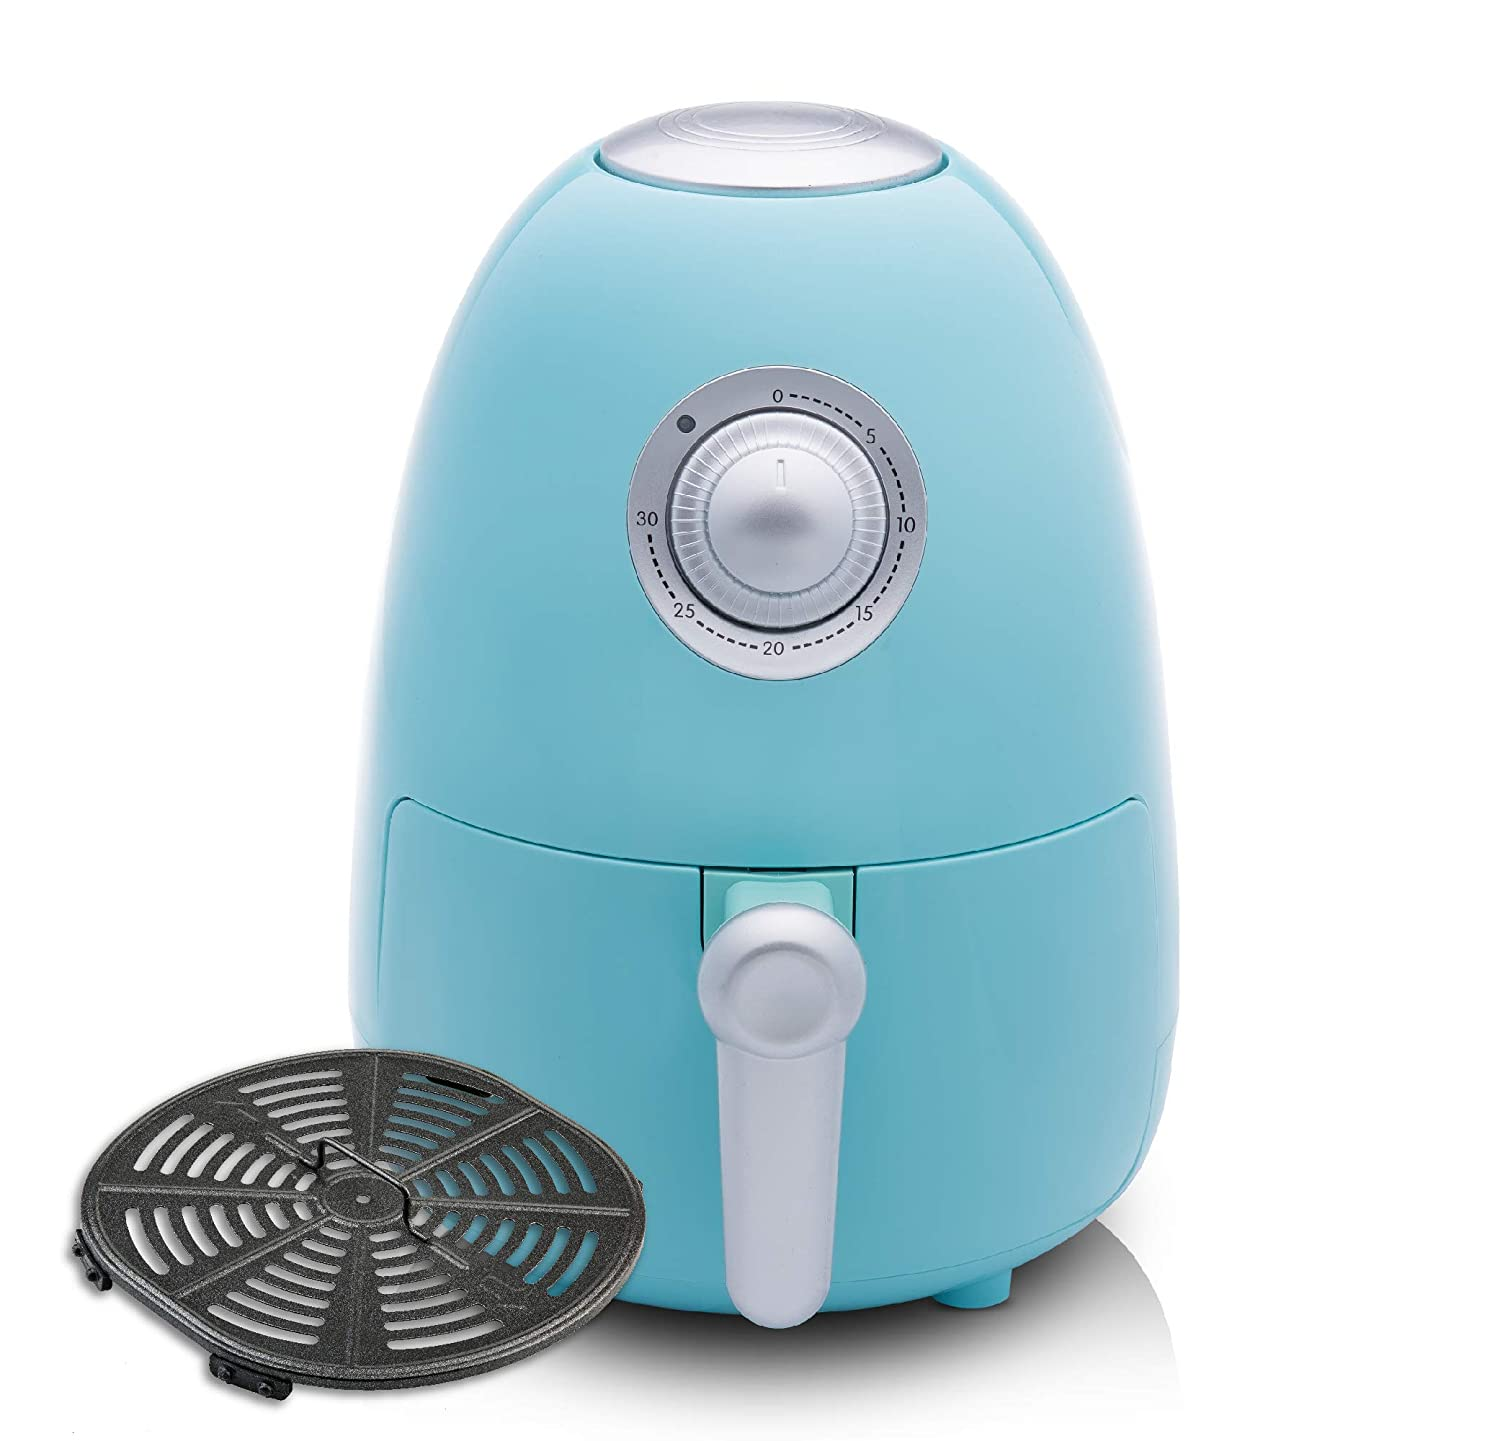 Modernhome Premium Air Fryer with Full-Color Recipe Book and Dishwasher-Safe Parts 2.1Qt Model Seafoam Teal